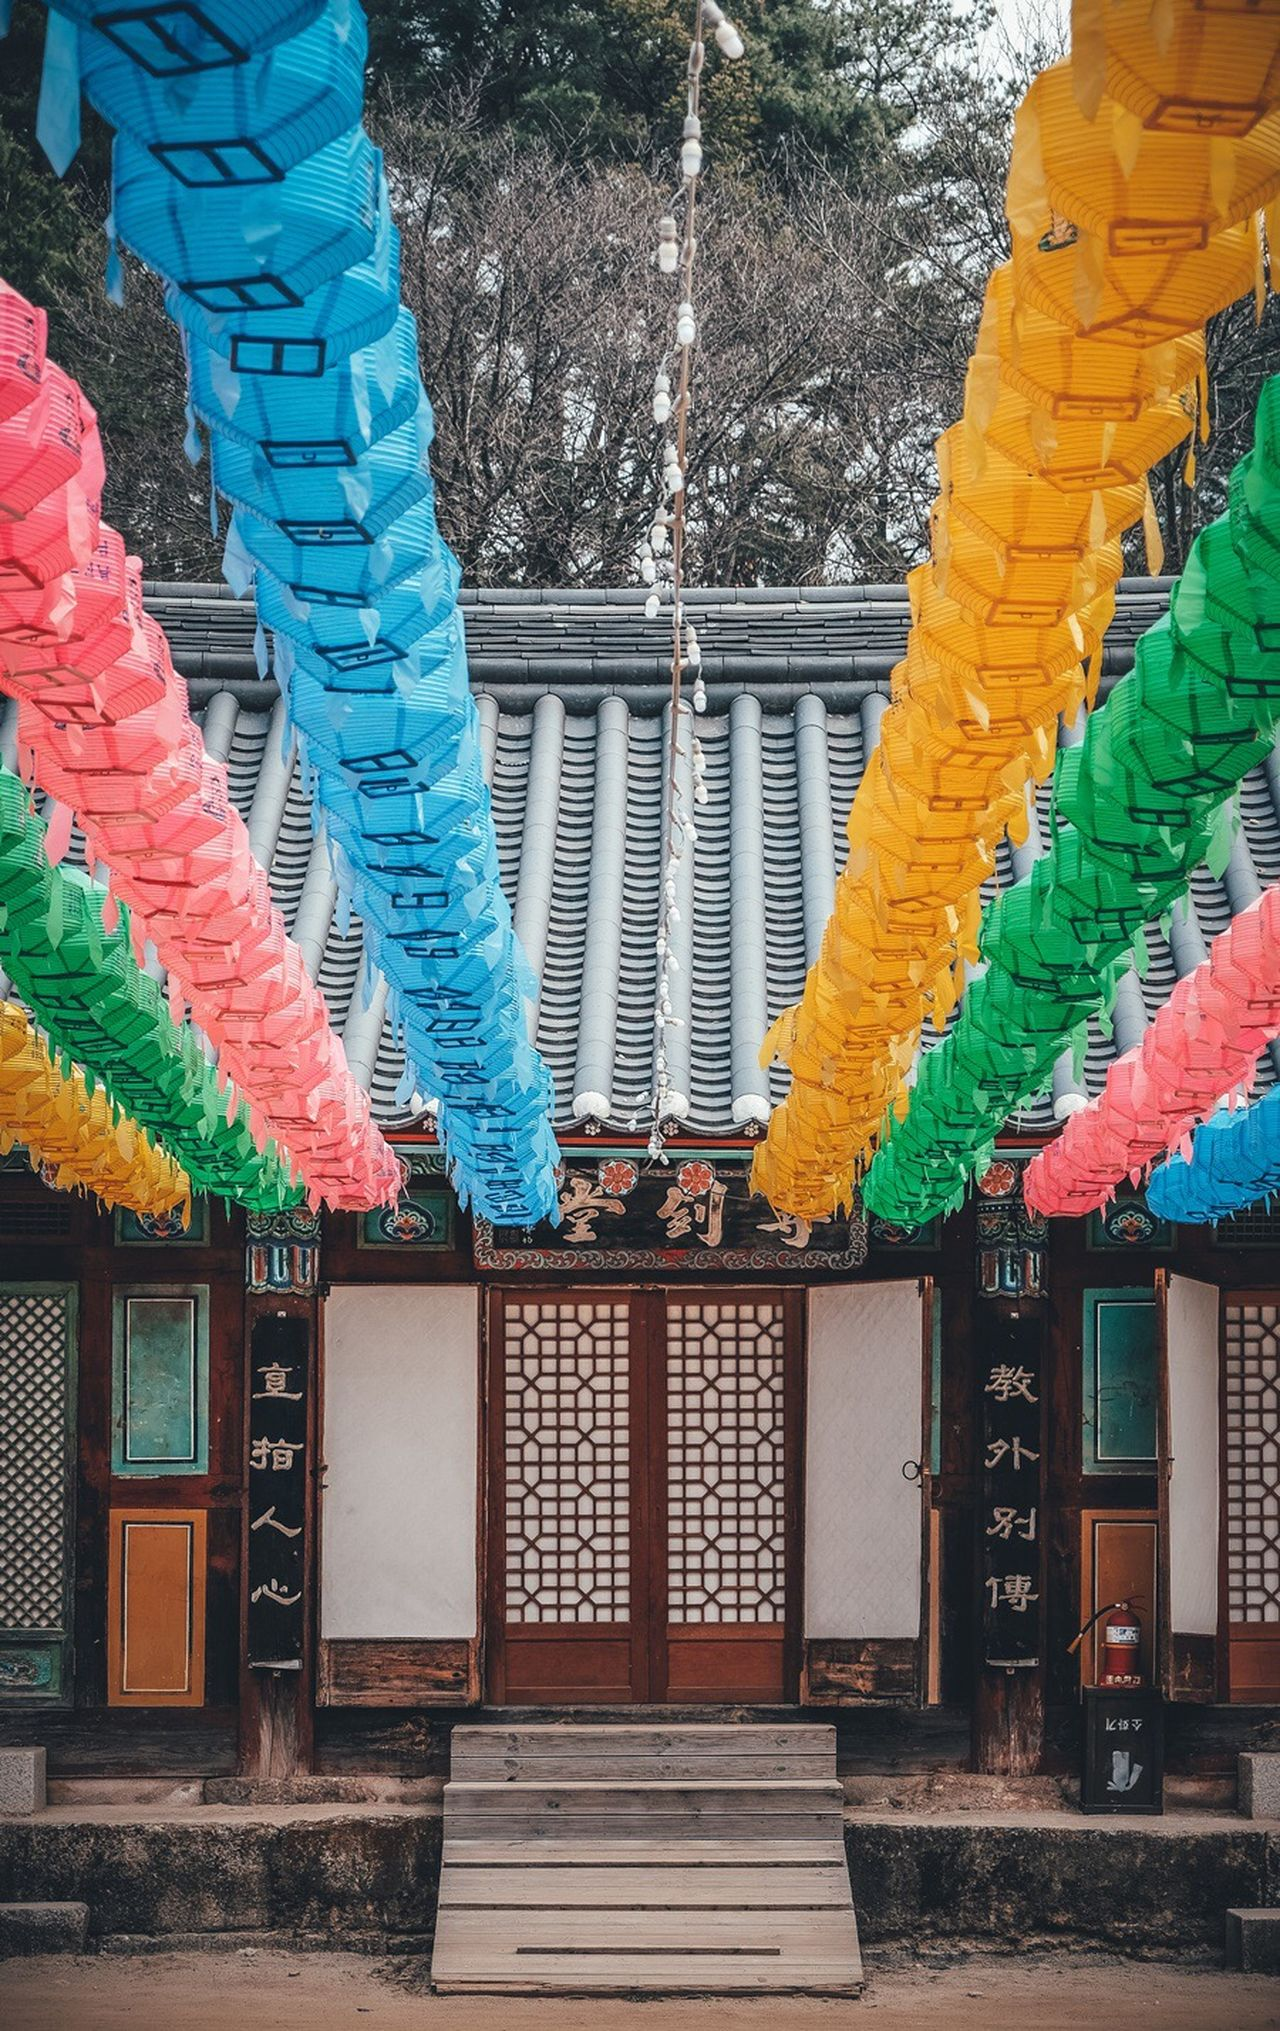 Sinreuksa, South Korea Temple Architecture Korean Traditional Architecture Korean Temple Buddhism Lights Built Structure Multi Colored Hanging Outdoors No People